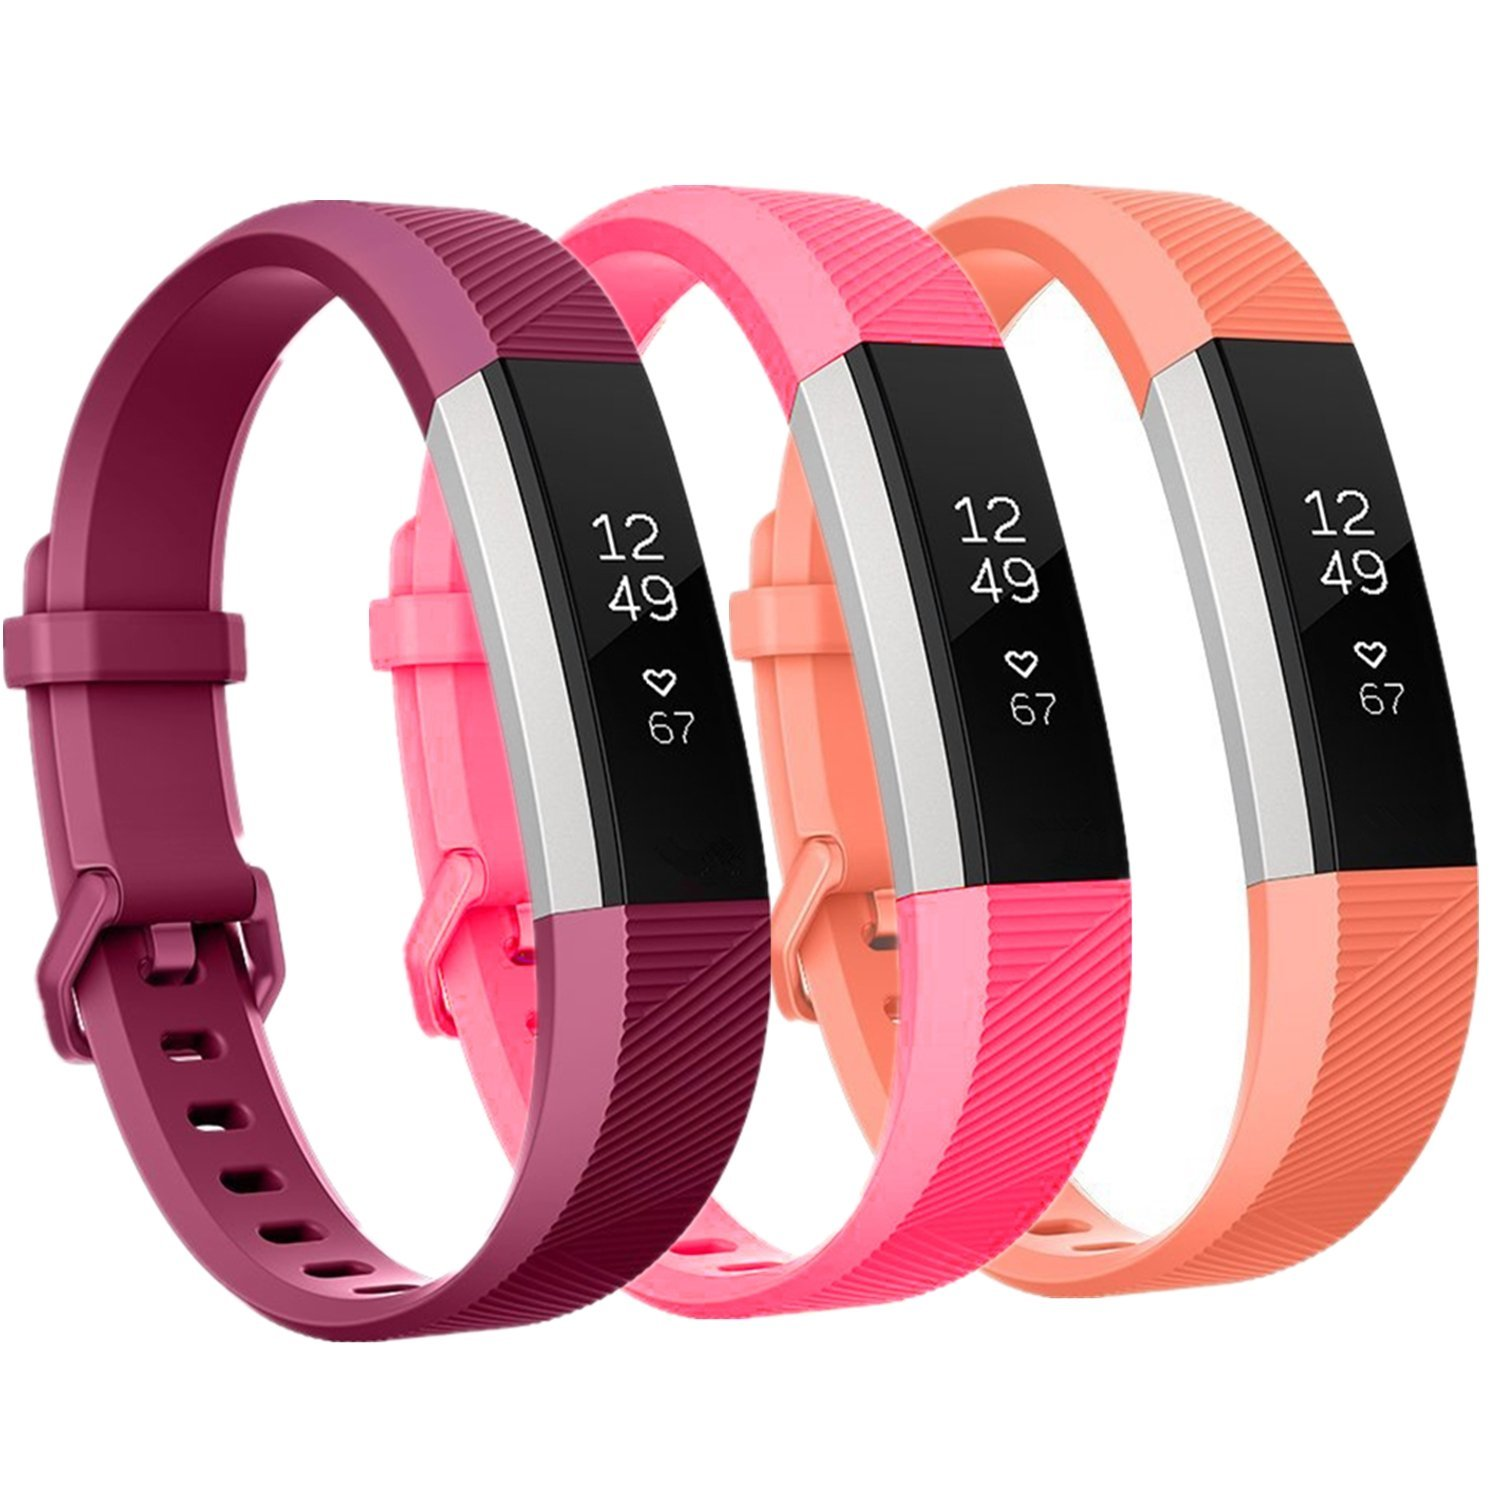 Moretek Bands Strap for Fitbit Alta / Fitbit Alta HR Tracker Wristband Small